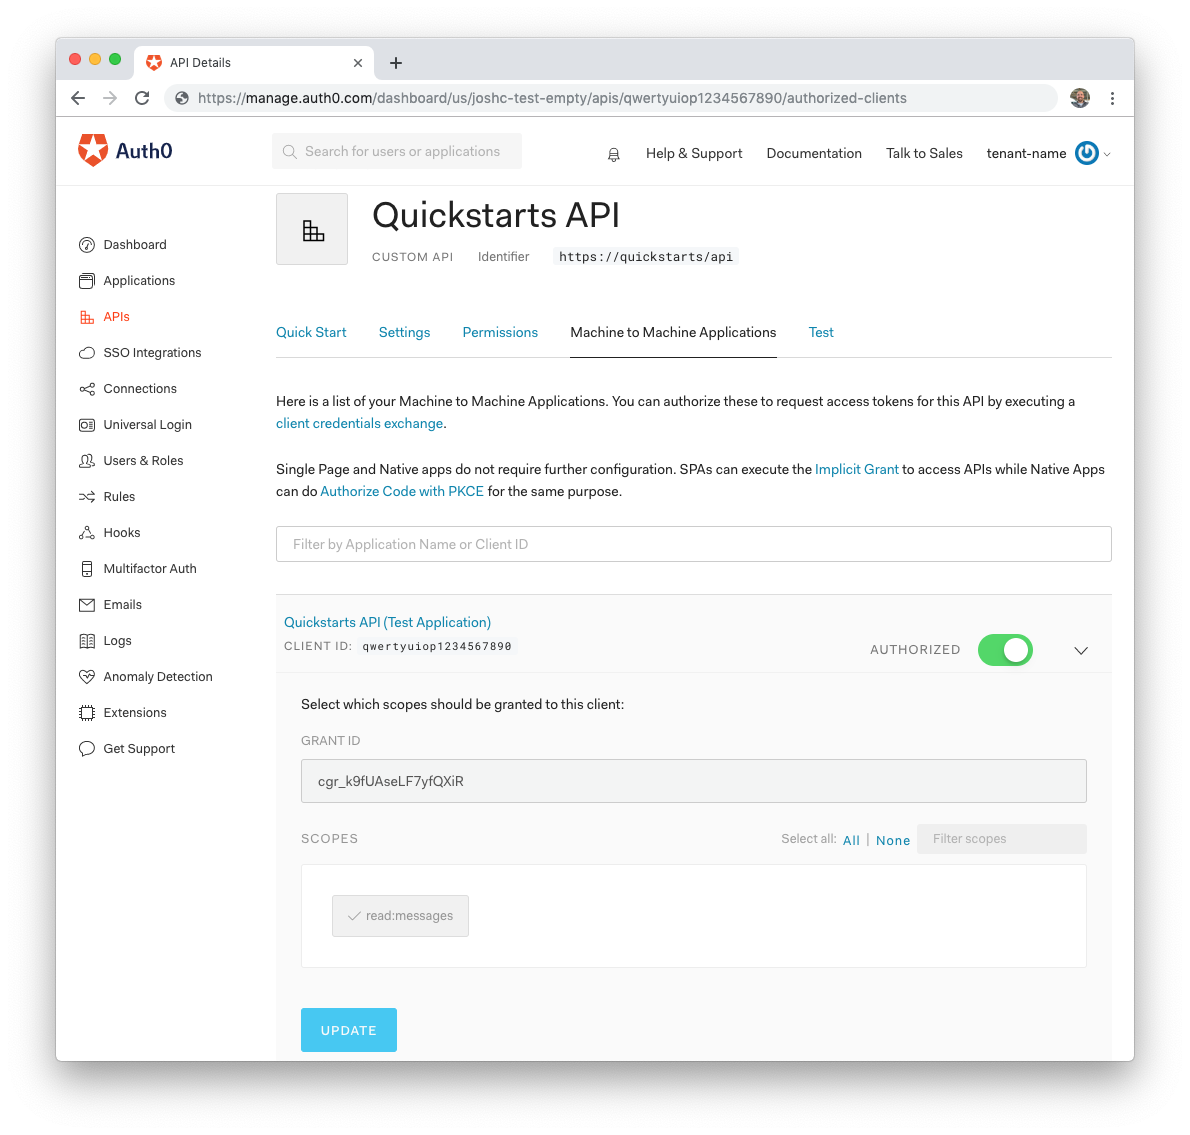 Auth0 Laravel API SDK Quickstarts: Authorization